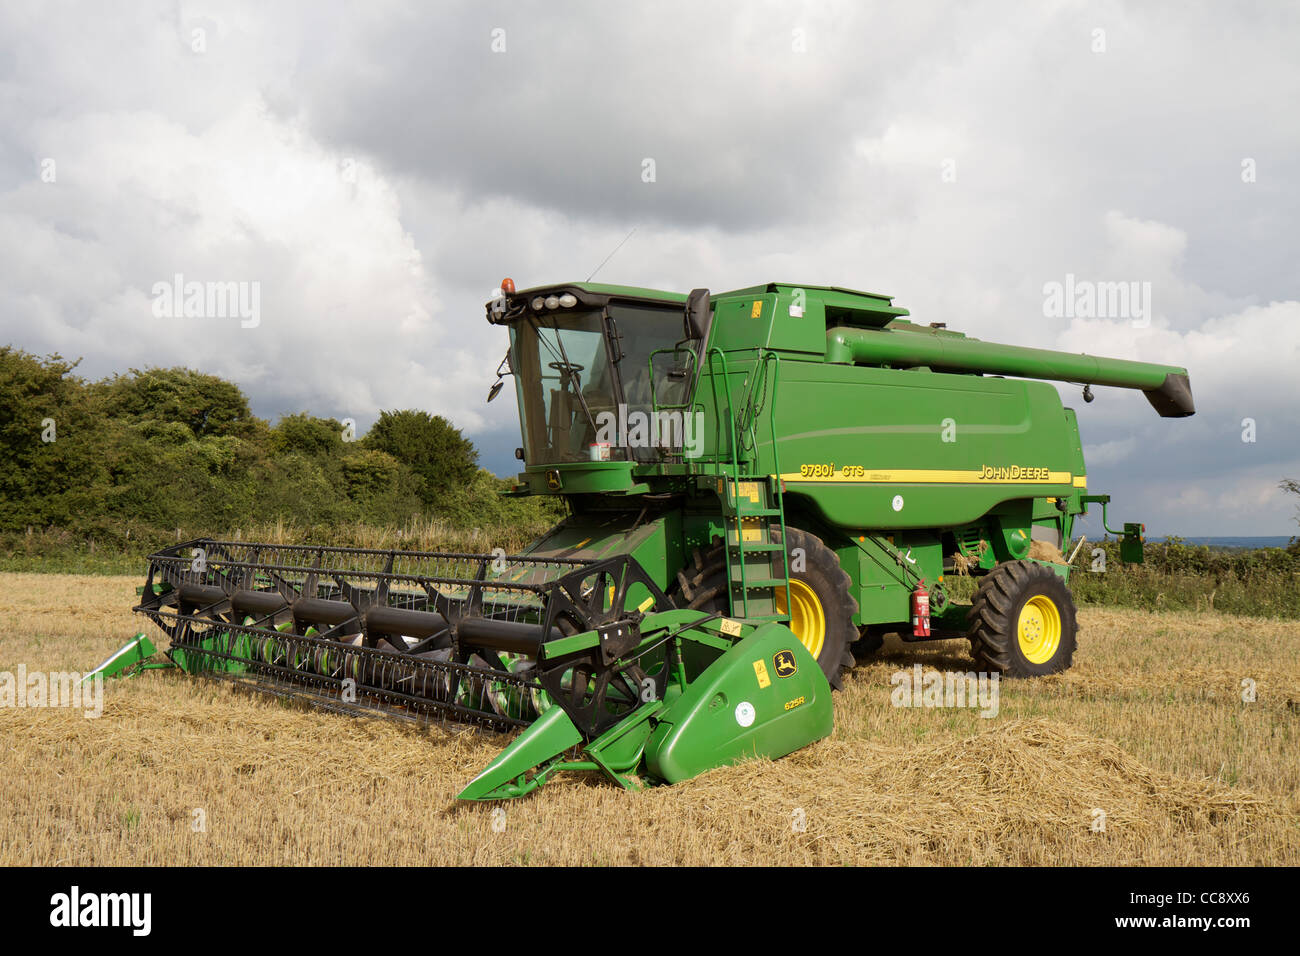 John Deere Combine Harvester 9780i CTS Hillmaster in a ...